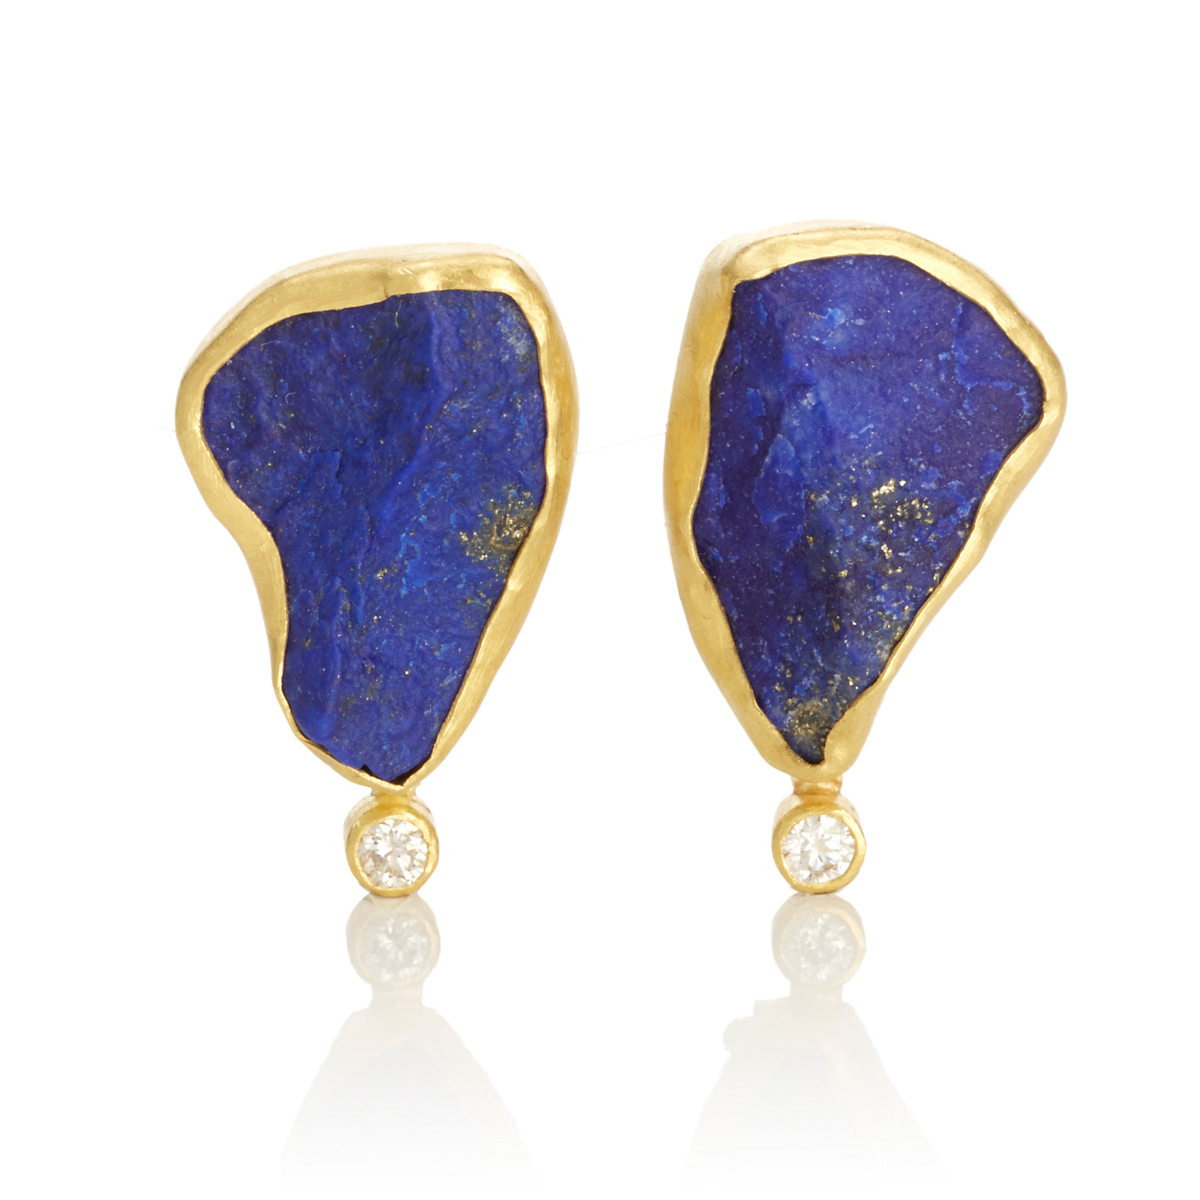 Petra Class Rough Lapis & Diamond Earrings